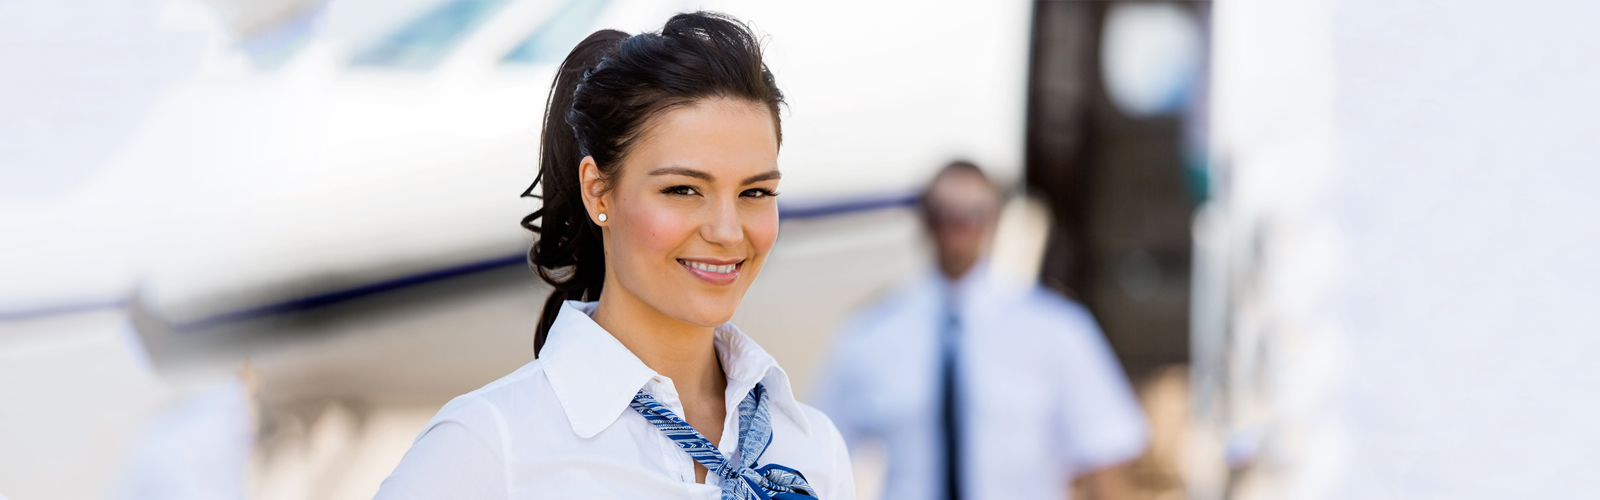 Freelance Aircrew - Your complete crewing solution for aircraft - Flight Attendants